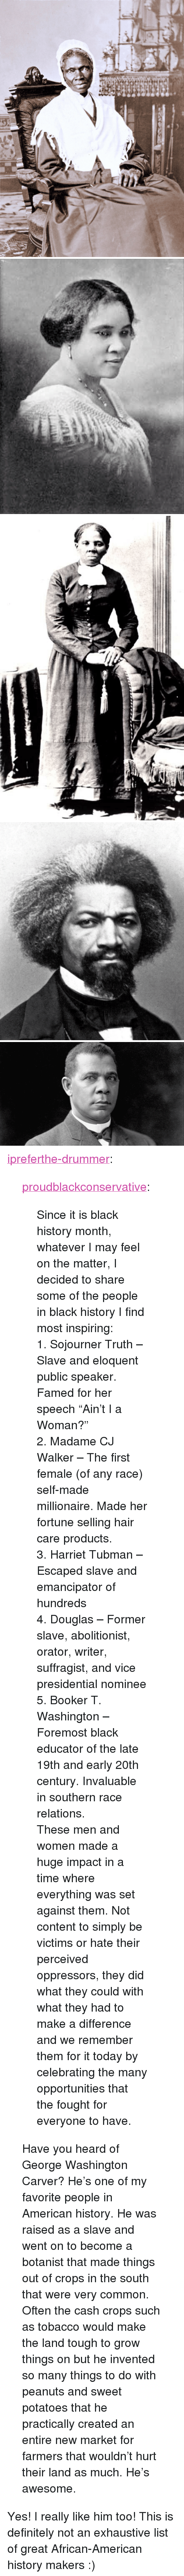 "Black History Month, Definitely, and Tumblr: <p><a href=""http://ipreferthe-drummer.tumblr.com/post/139685498035/proudblackconservative-since-it-is-black"" class=""tumblr_blog"">ipreferthe-drummer</a>:</p>  <blockquote><p><a href=""http://proudblackconservative.tumblr.com/post/139682882774/since-it-is-black-history-month-whatever-i-may"" class=""tumblr_blog"">proudblackconservative</a>:</p> <blockquote> <p>Since it is black history month, whatever I may feel on the matter, I decided to share some of the people in black history I find most inspiring:<br/> 1. Sojourner Truth – Slave and eloquent public speaker. Famed for her speech ""Ain't I a Woman?""<br/> 2. Madame CJ Walker – The first female (of any race) self-made millionaire. Made her fortune selling hair care products.<br/> 3. Harriet Tubman – Escaped slave and emancipator of hundreds<br/> 4. Douglas – Former slave, abolitionist, orator, writer, suffragist, and vice presidential nominee<br/> 5. Booker T. Washington – Foremost black educator of the late 19th and early 20th century. Invaluable in southern race relations.</p>  <p>These men and women made a huge impact in a time where everything was set against them. Not content to simply be victims or hate their perceived oppressors, they did what they could with what they had to make a difference and we remember them for it today by celebrating the many opportunities that the fought for everyone to have.</p> </blockquote> <p>Have you heard of George Washington Carver? He's one of my favorite people in American history. He was raised as a slave and went on to become a botanist that made things out of crops in the south that were very common. Often the cash crops such as tobacco would make the land tough to grow things on but he invented so many things to do with peanuts and sweet potatoes that he practically created an entire new market for farmers that wouldn't hurt their land as much. He's awesome.</p></blockquote>  <p>Yes! I really like him too! This is definitely not an exhaustive list of great African-American history makers :)</p>"